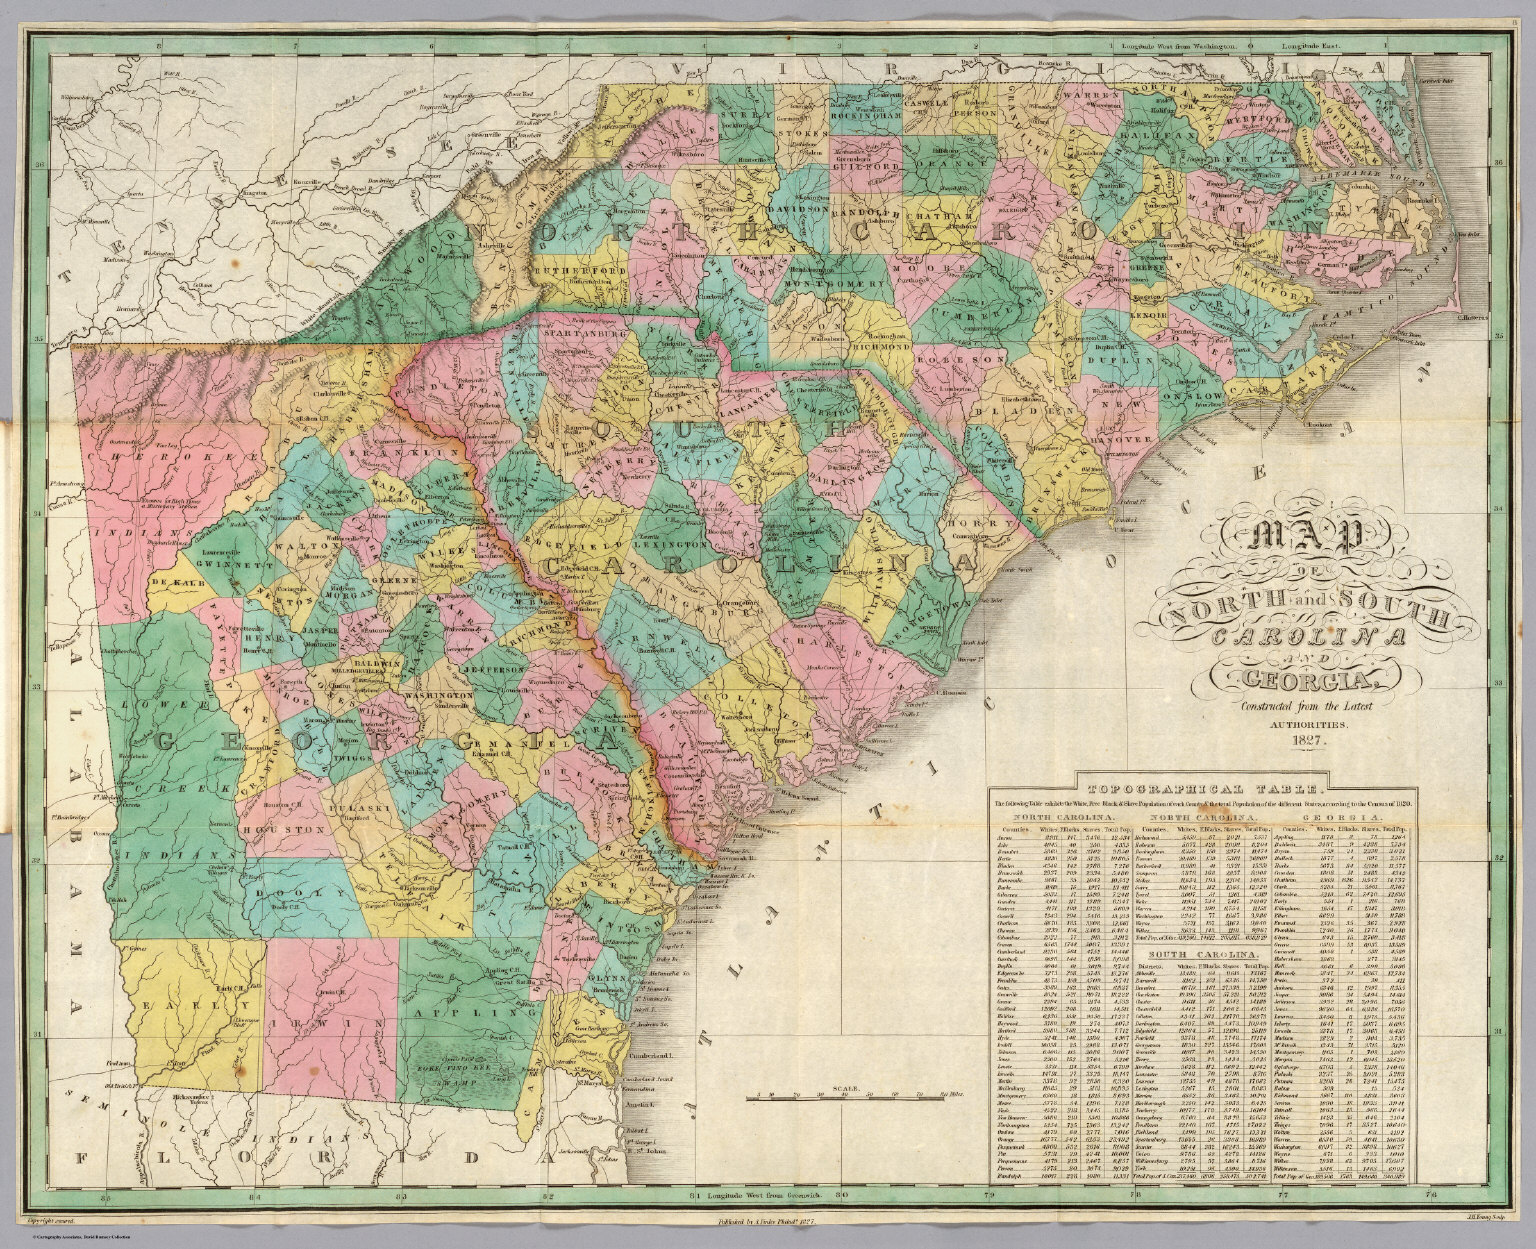 North South Carolina Map.North Carolina South Carolina Georgia David Rumsey Historical